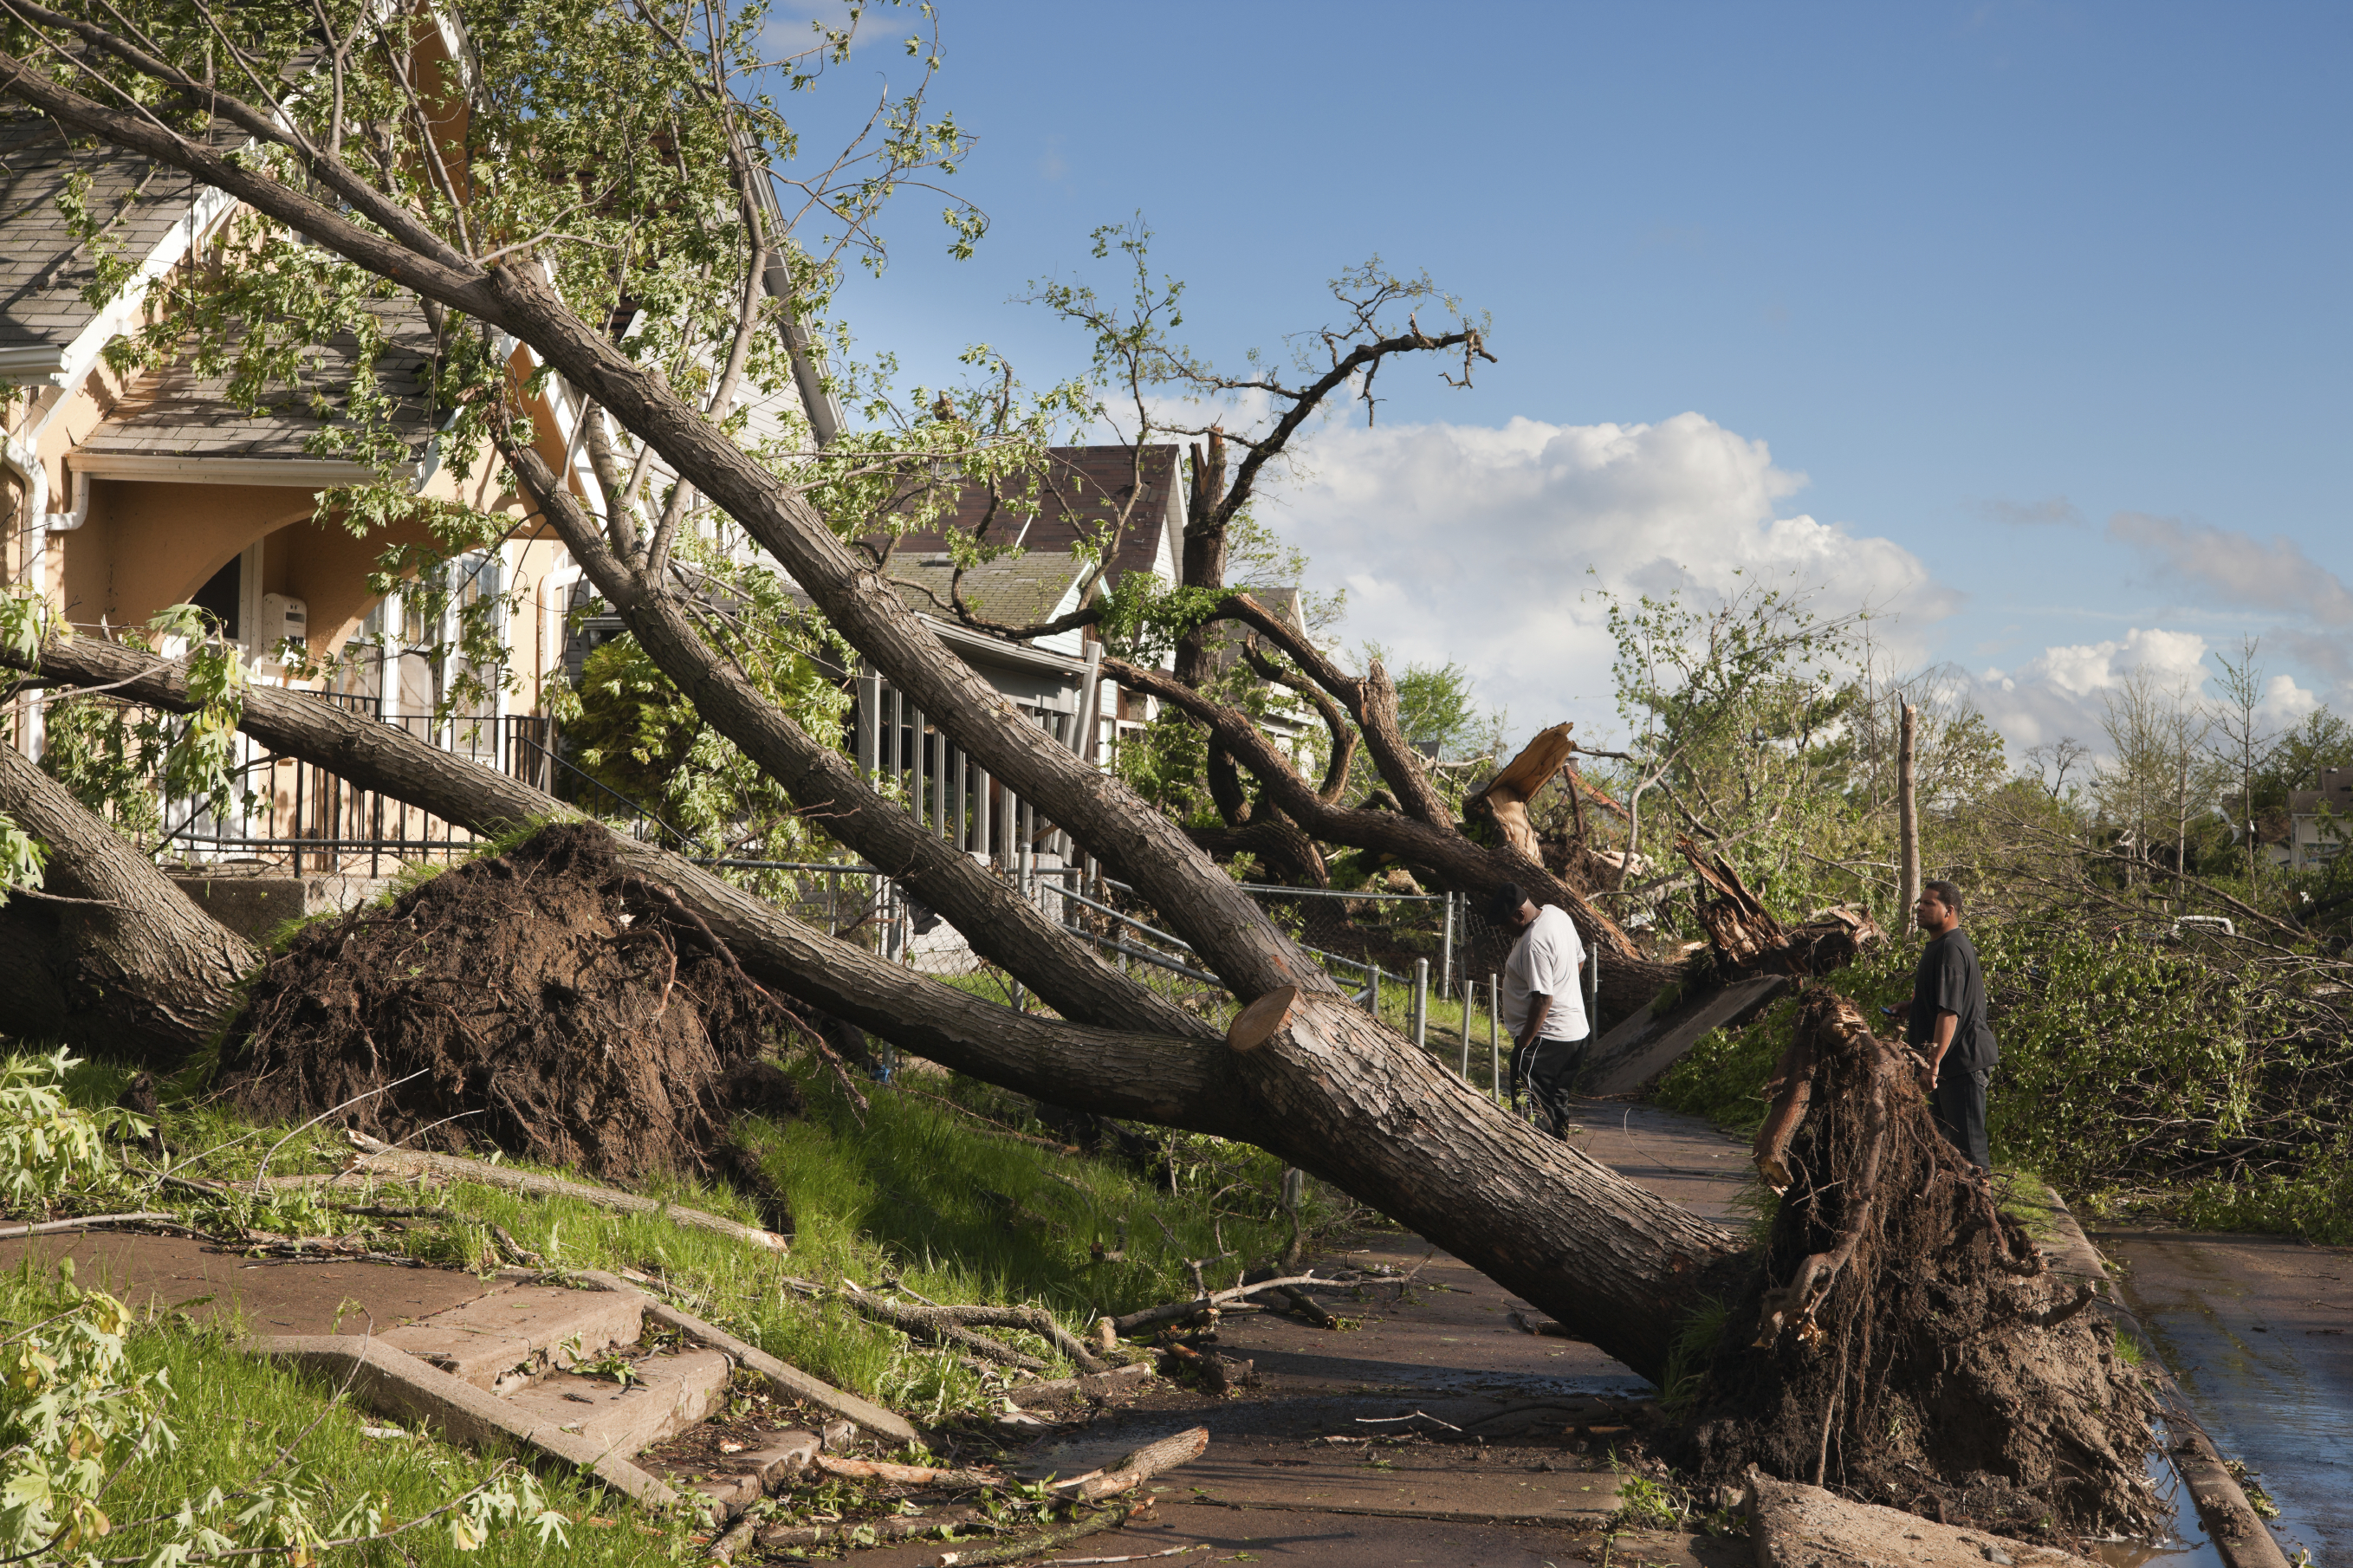 image of a tree uprooted and laying across the front yard within a block of homes